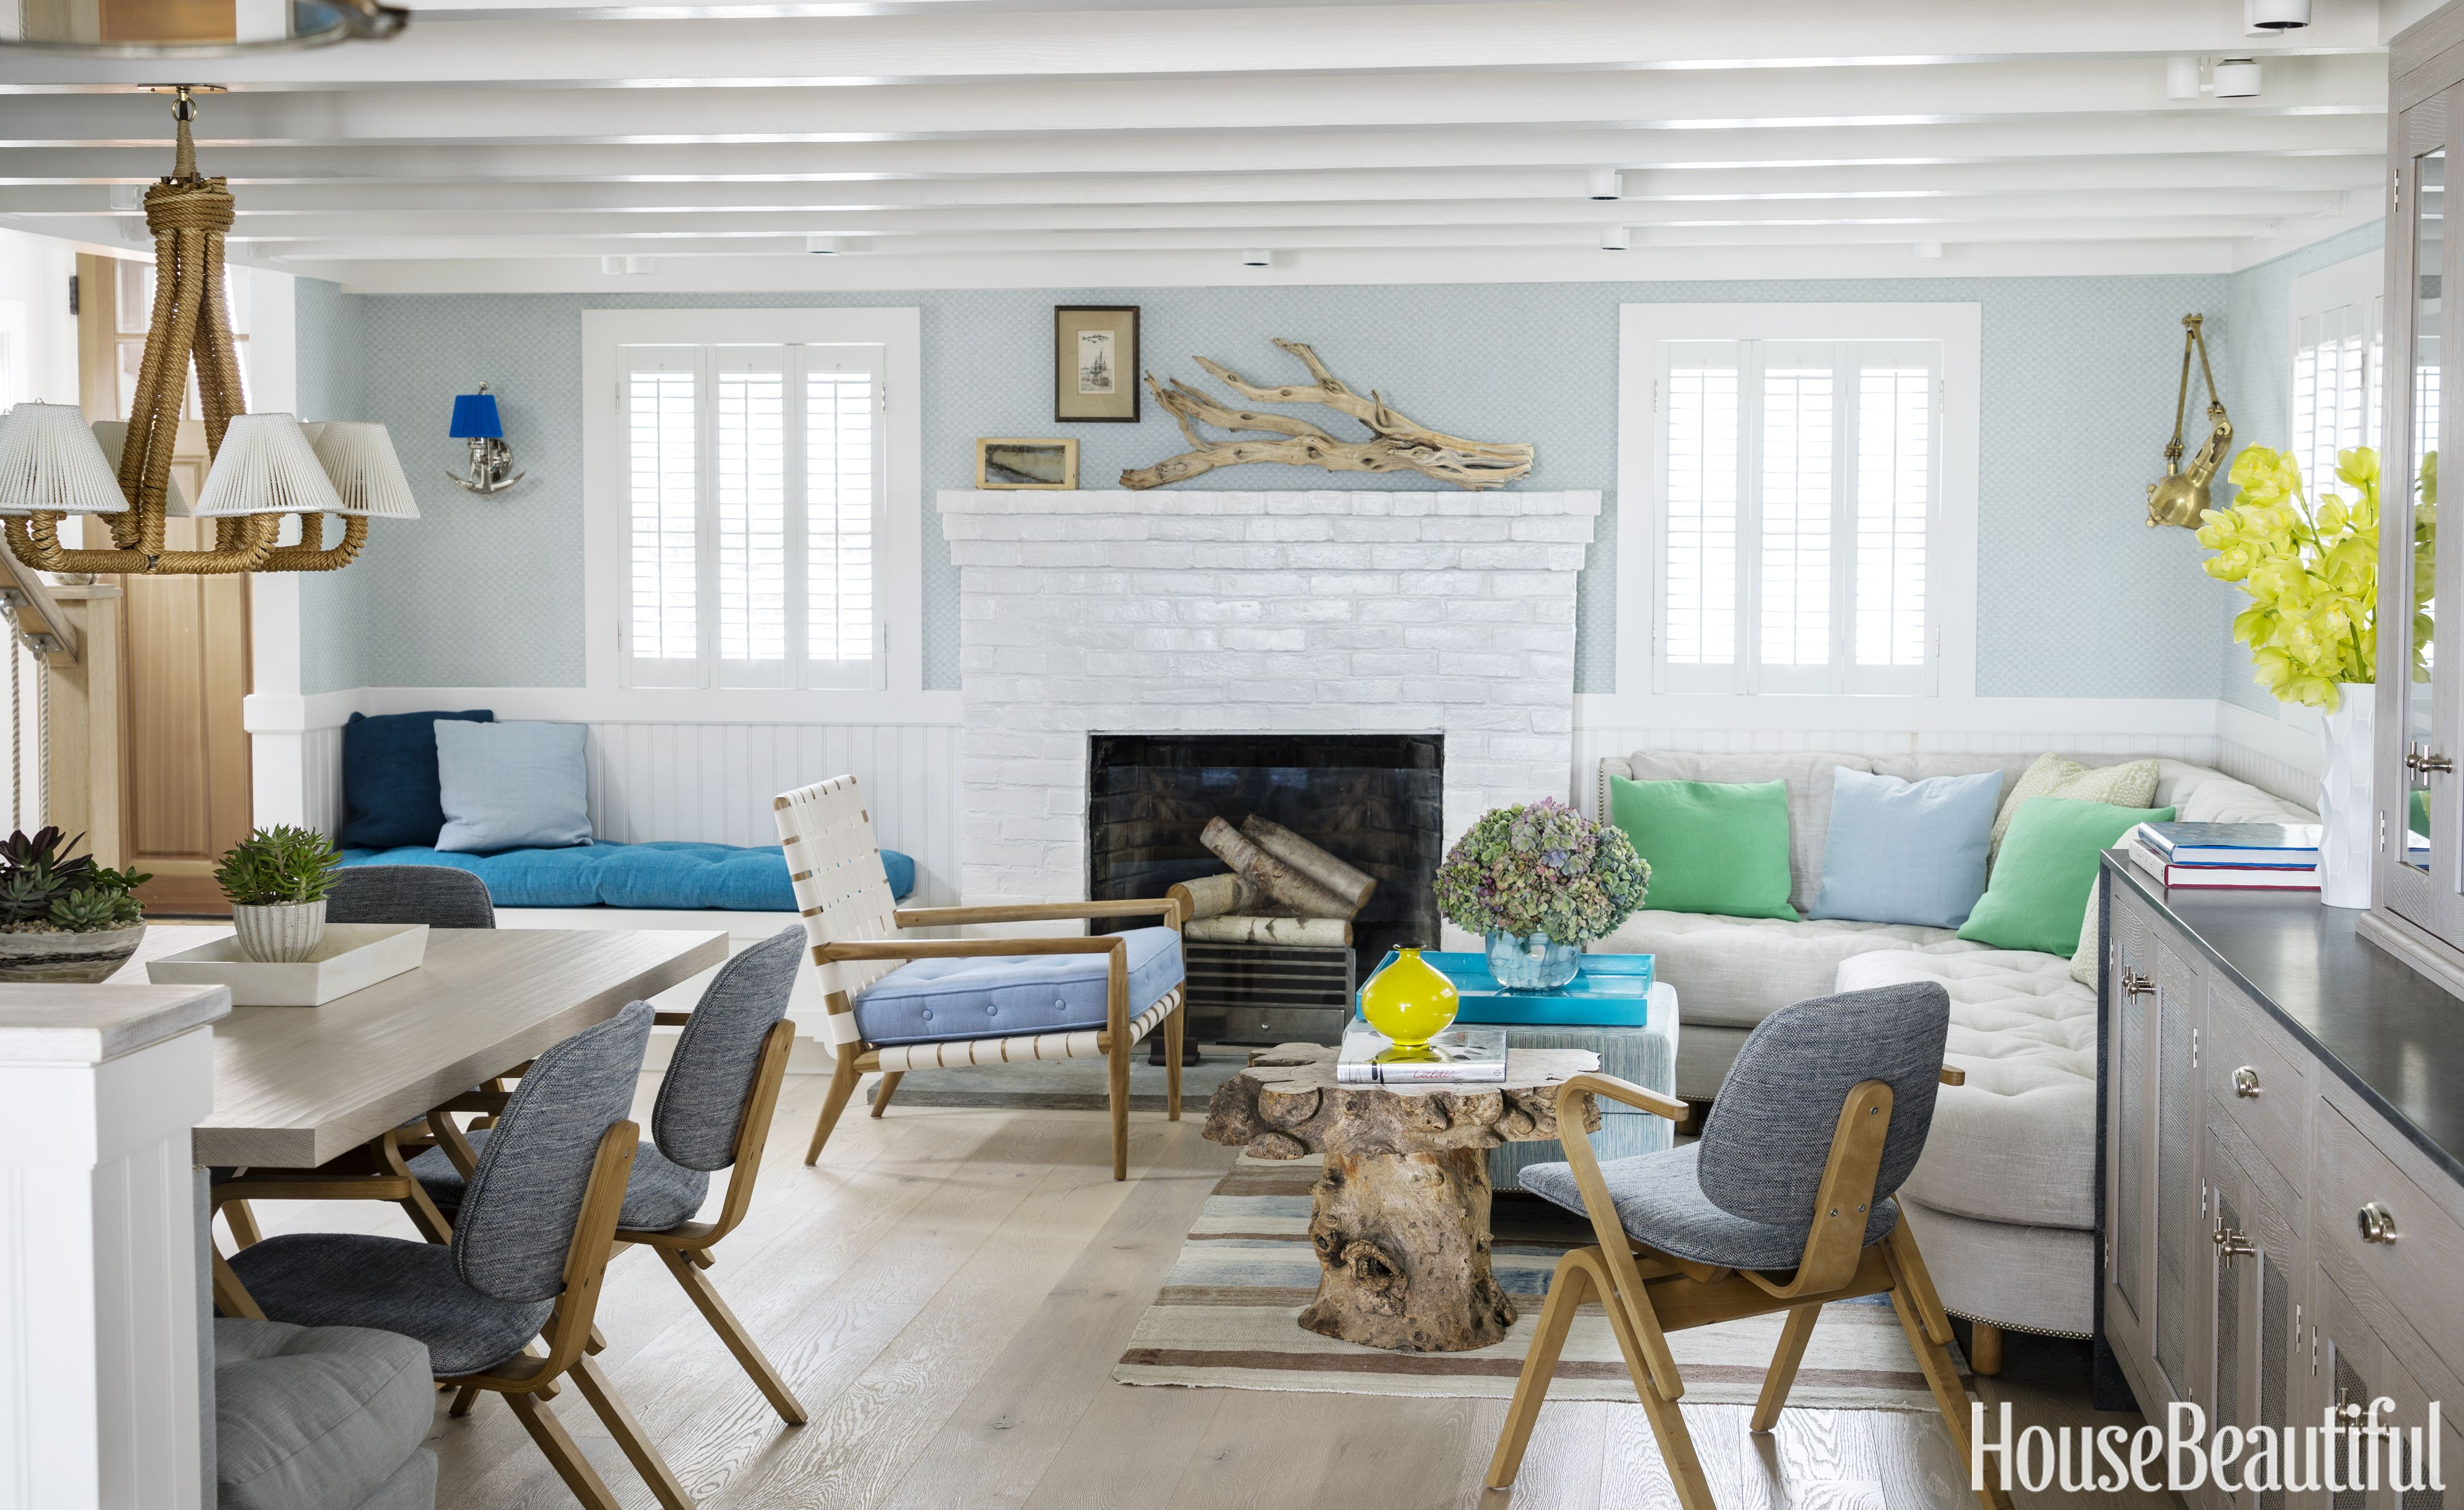 Frank Roop Beach House Decor And Decorating Ideas